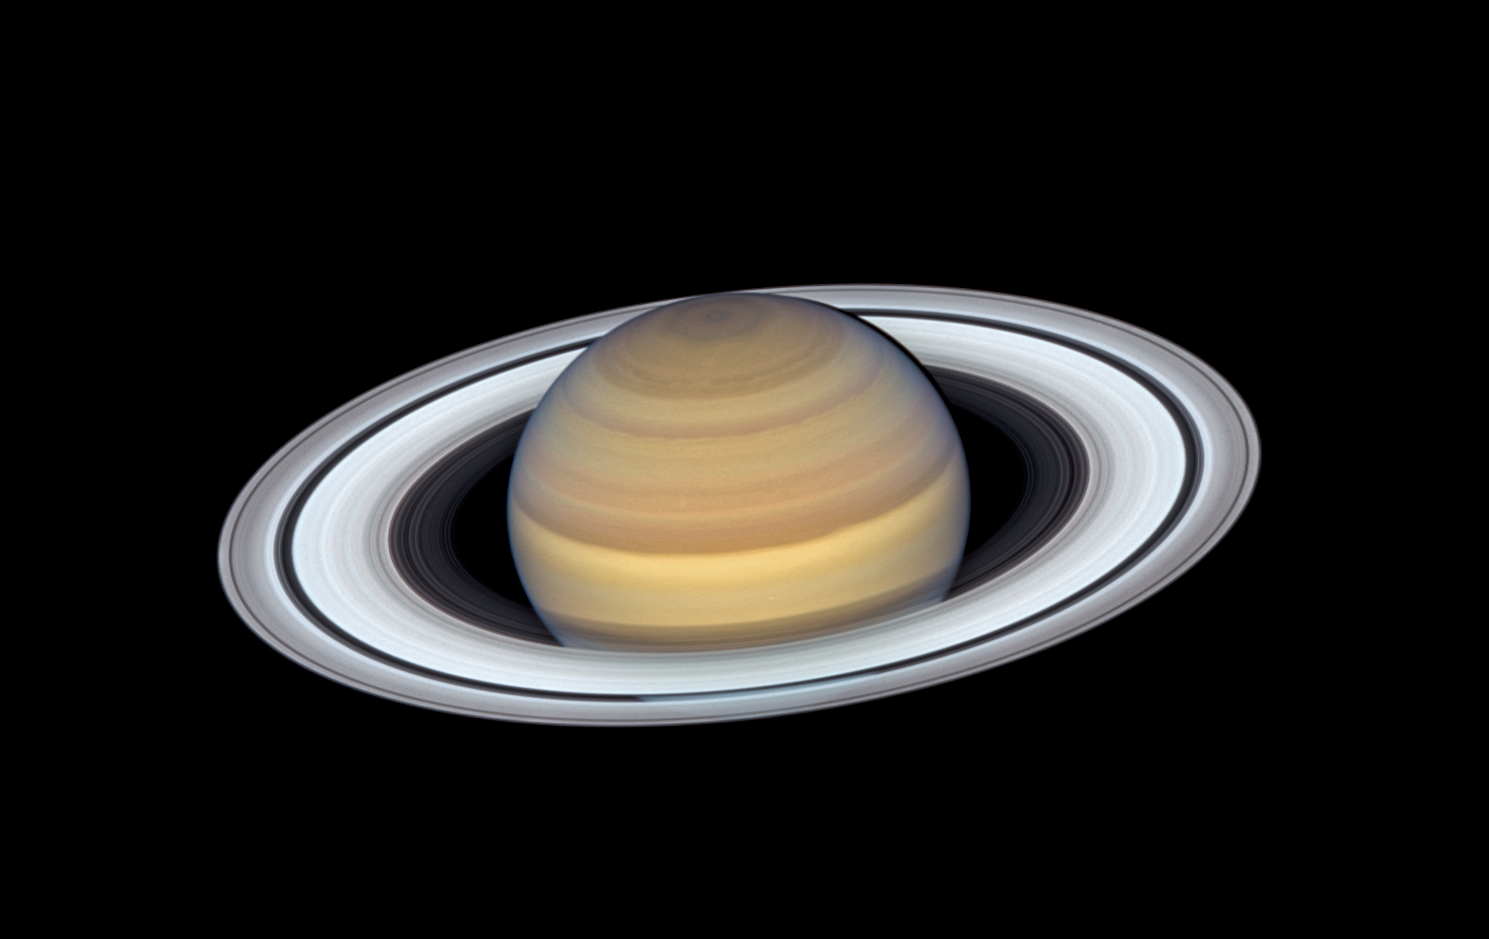 Hubble Space Telescope view of Saturn, June 2019